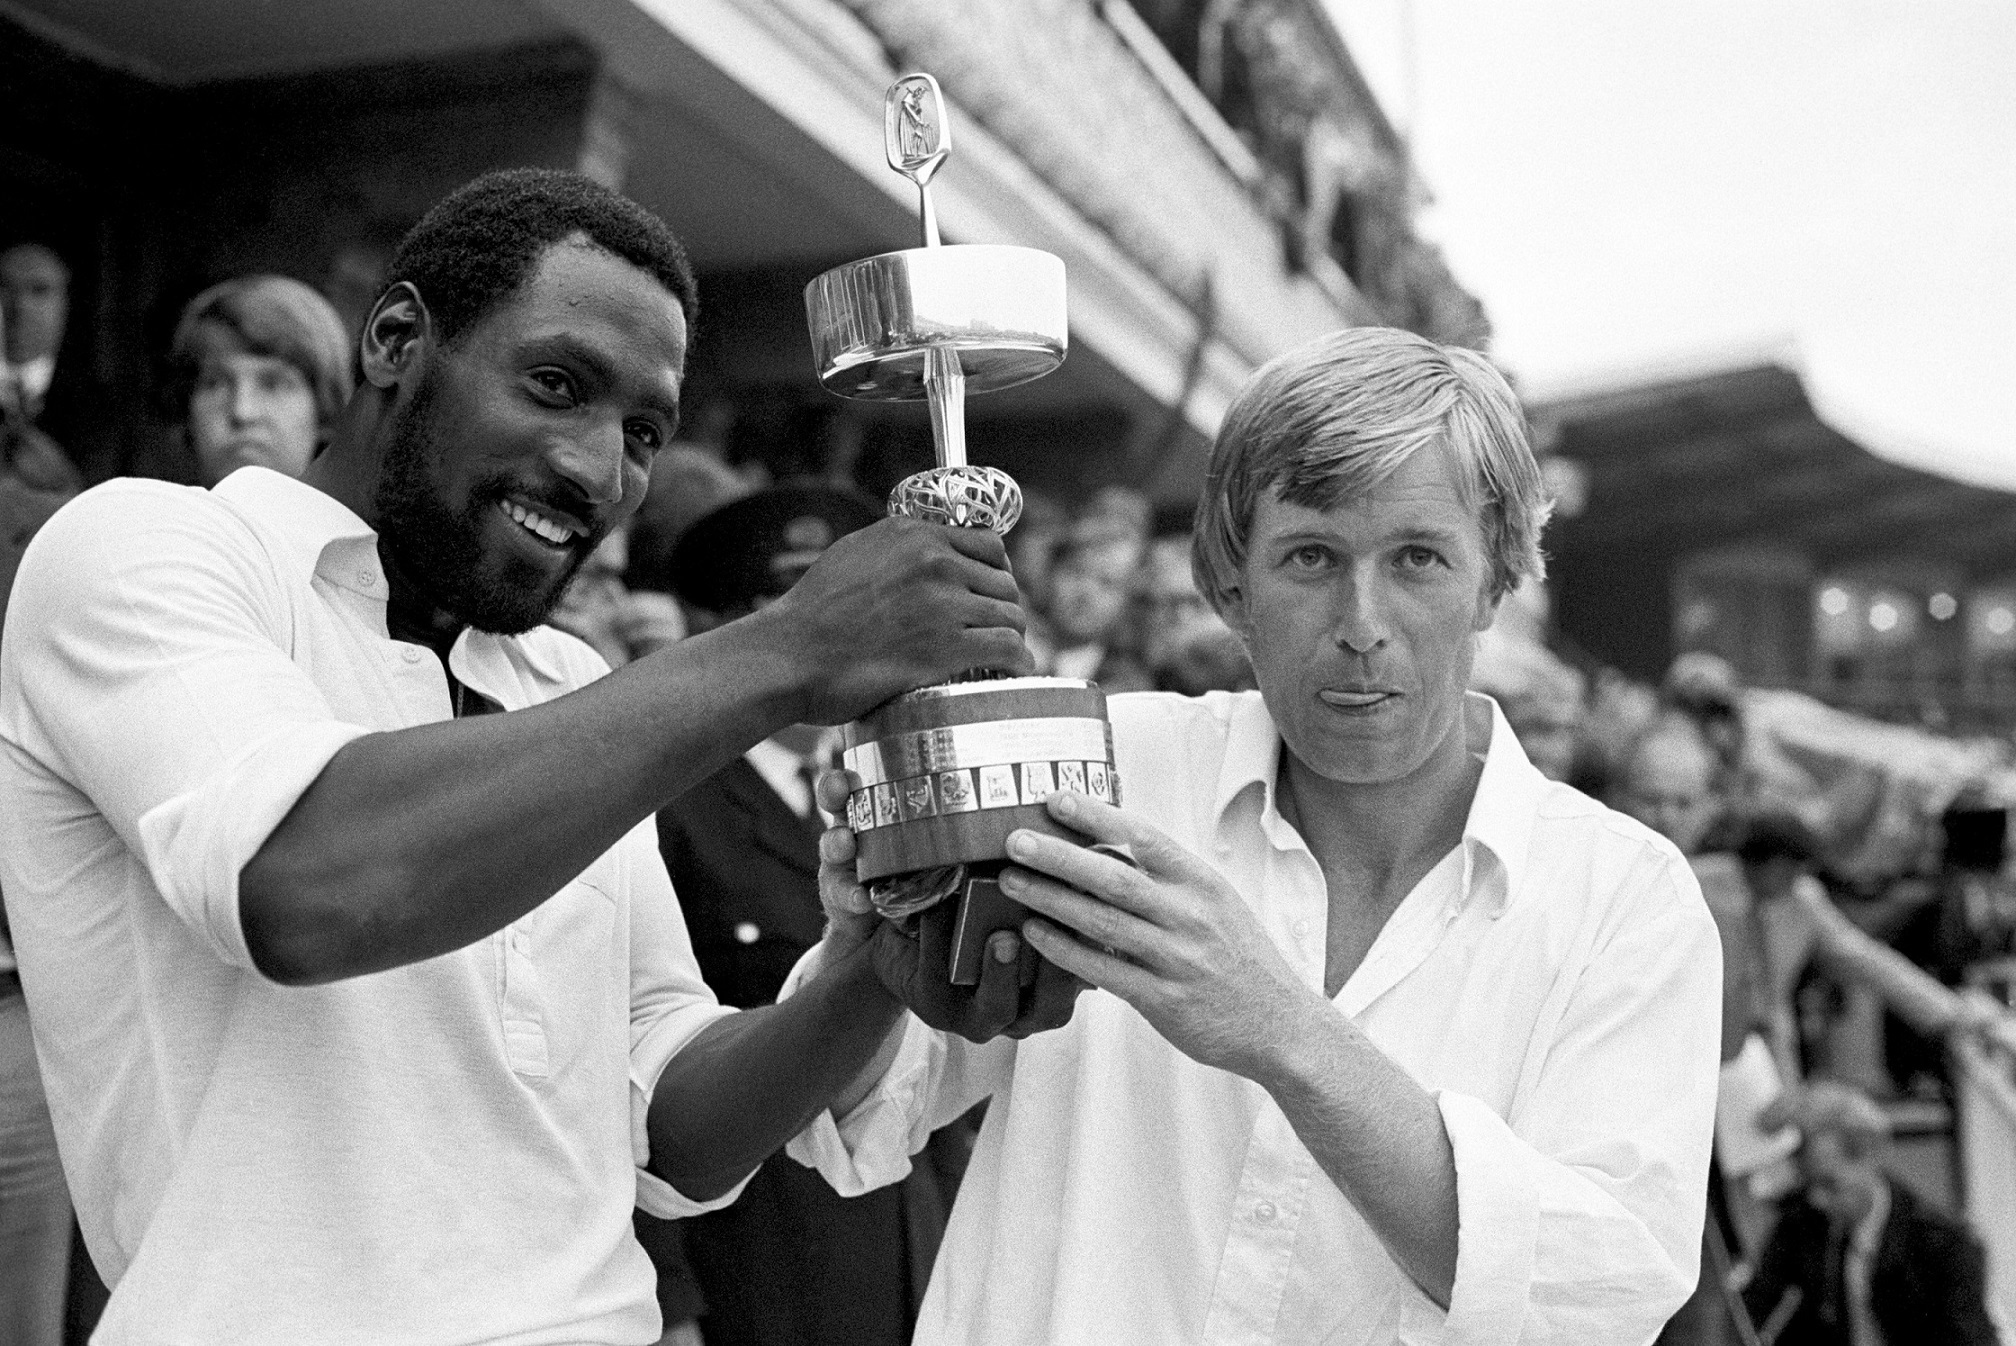 Somerset captain Brian Rose (r) and man of the match Viv Richards (l) hold the Gillette Cup aloft after their 45-run victory